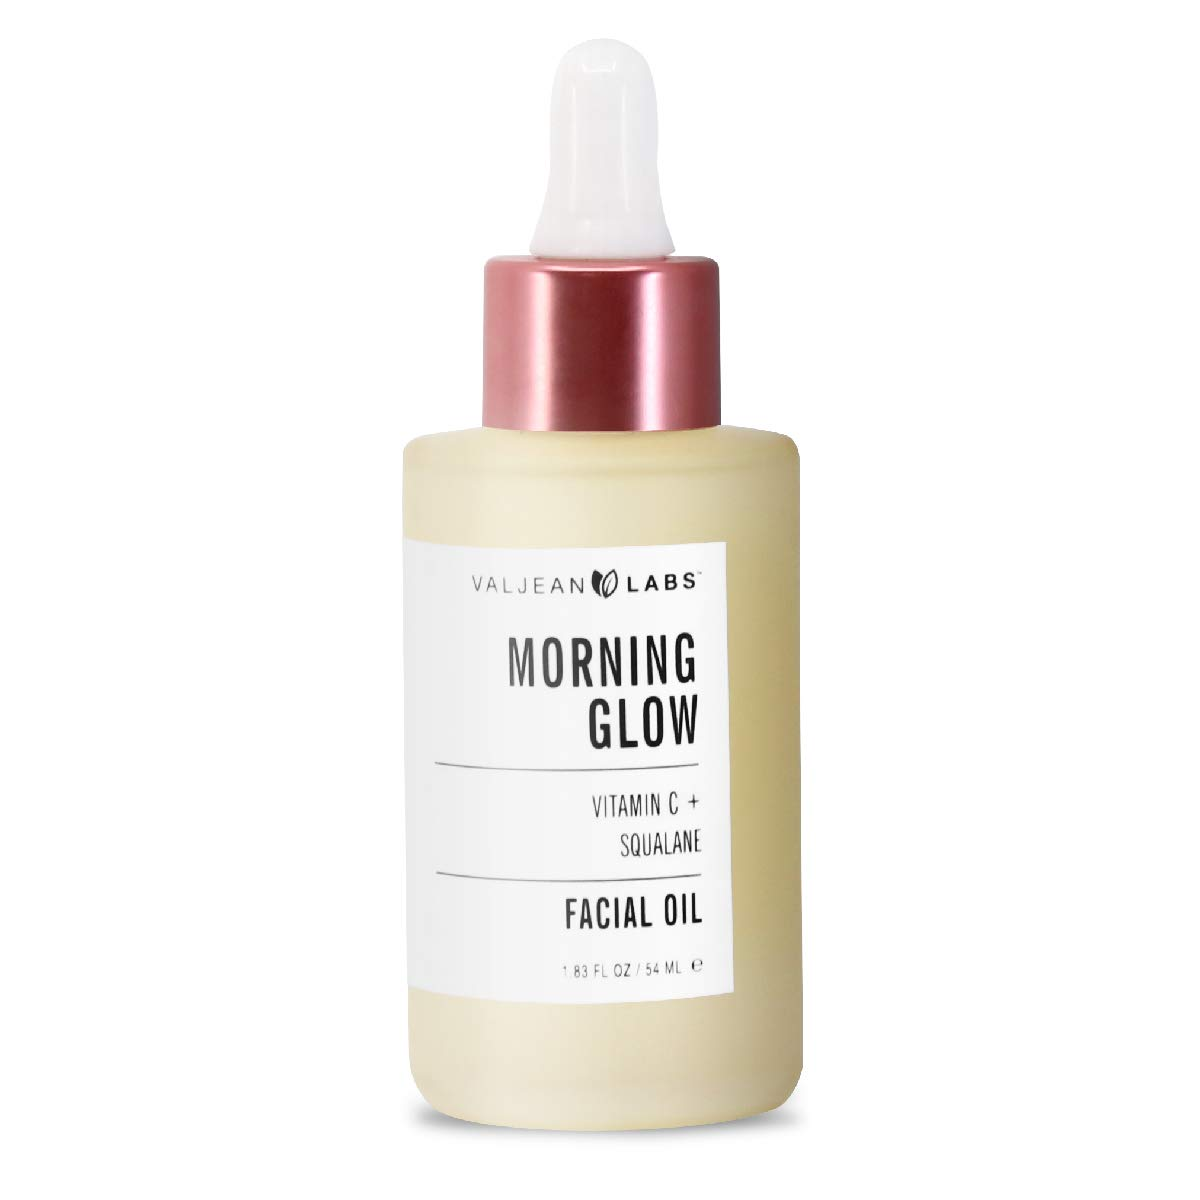 Valjean Labs Morning Glow, Vitamin C + Squalane Facial Oil